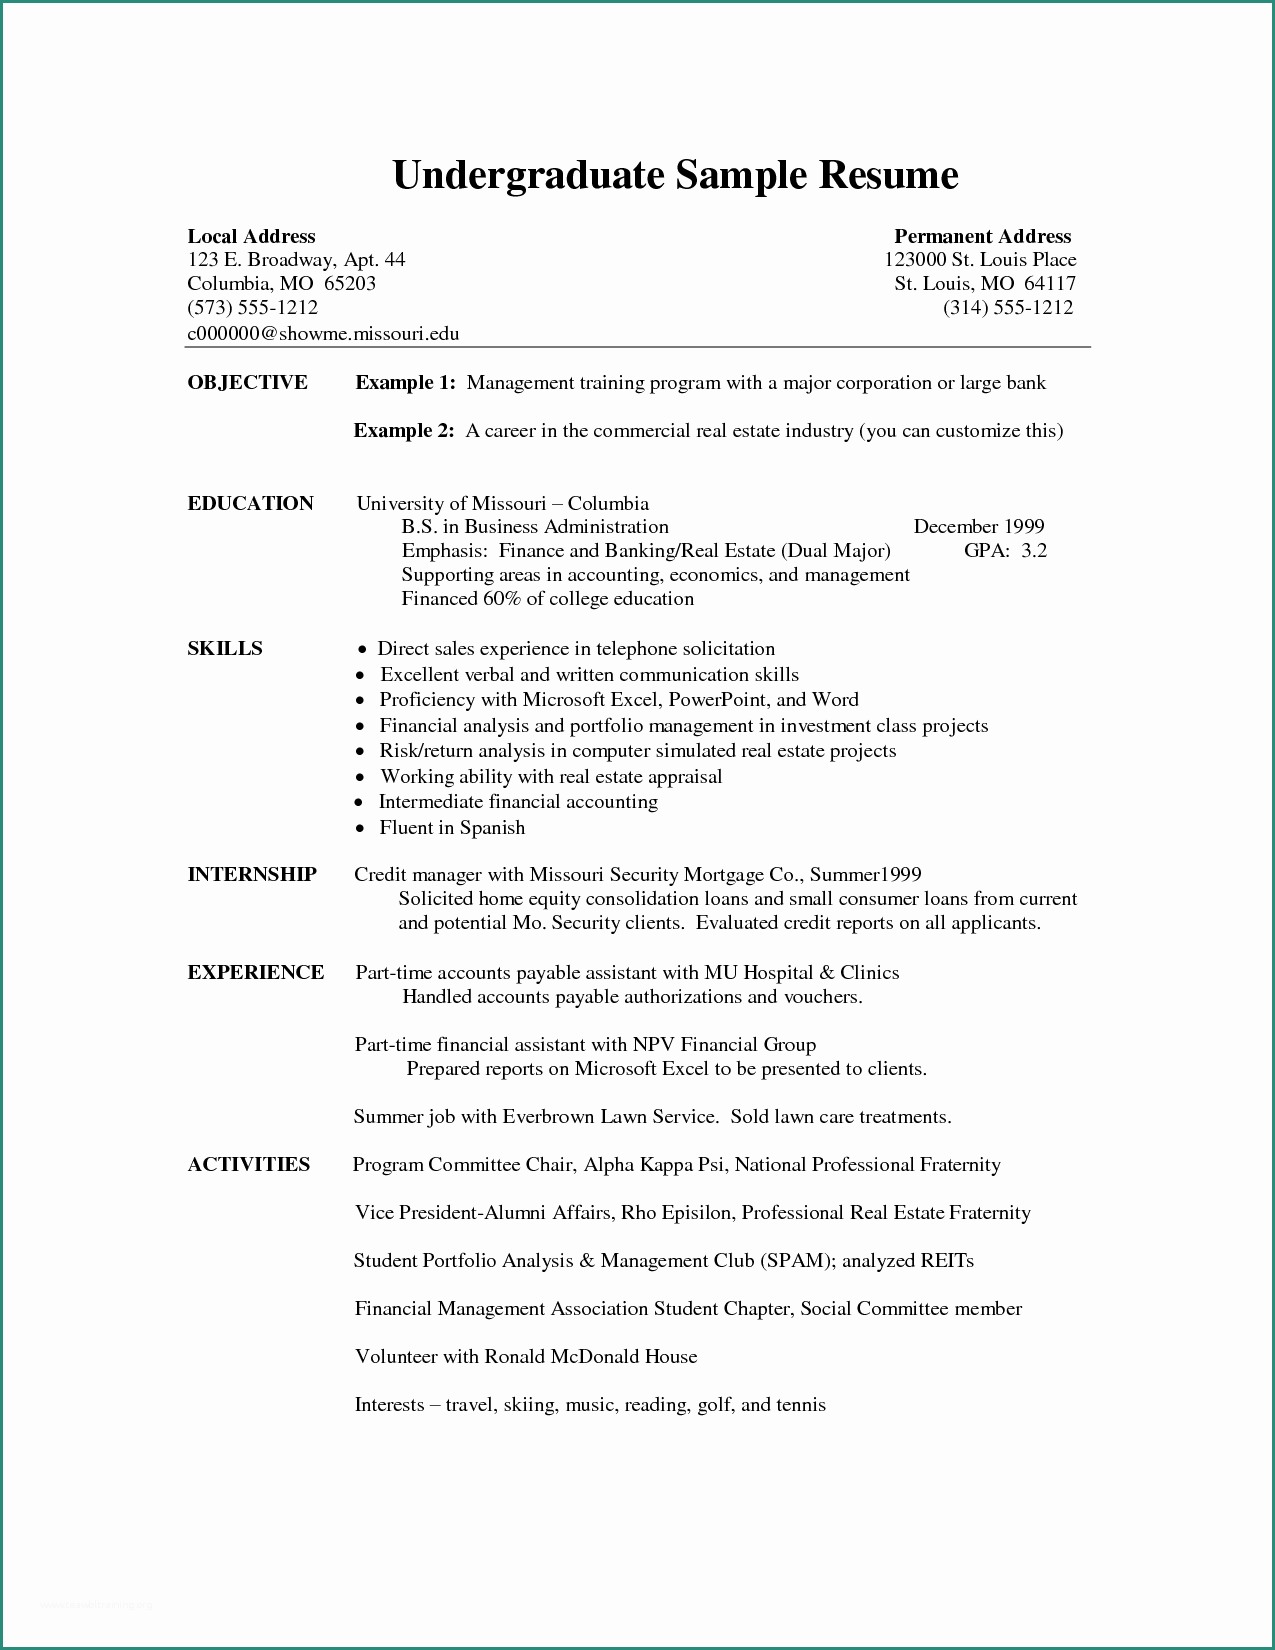 Word Resume Template 2 And Undergraduate Resume Template Word Sample Resume Cover